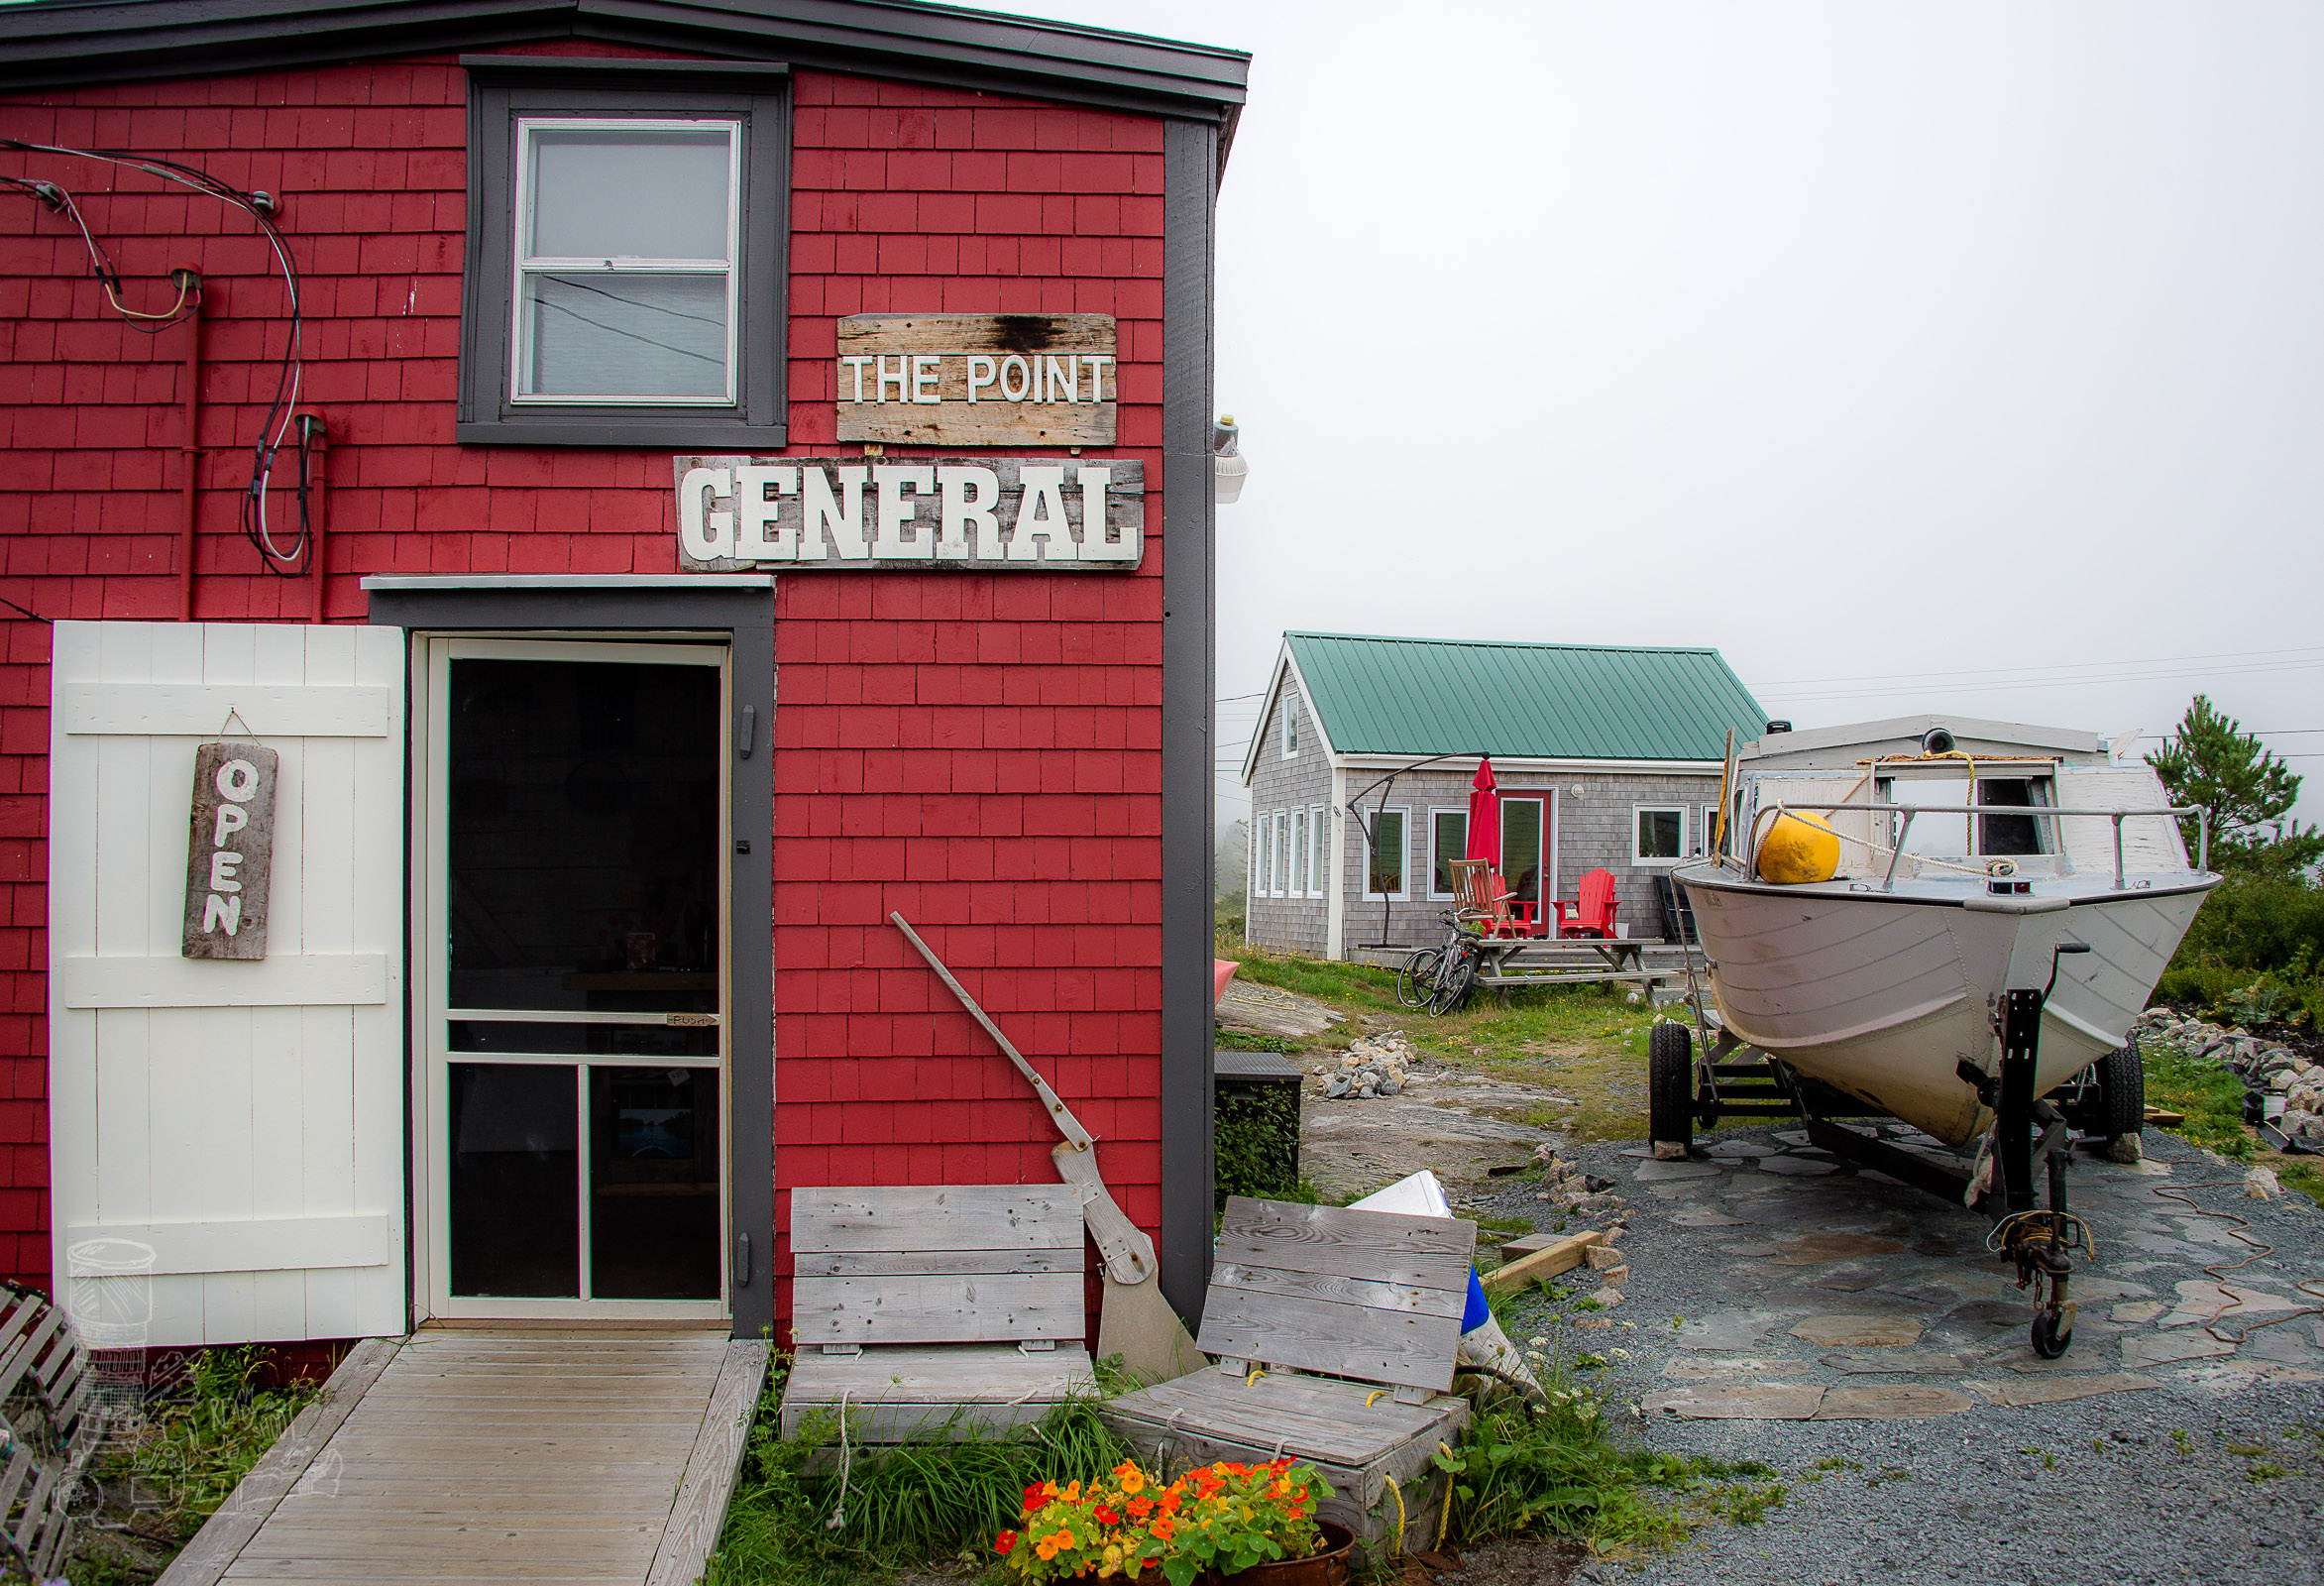 The Point General